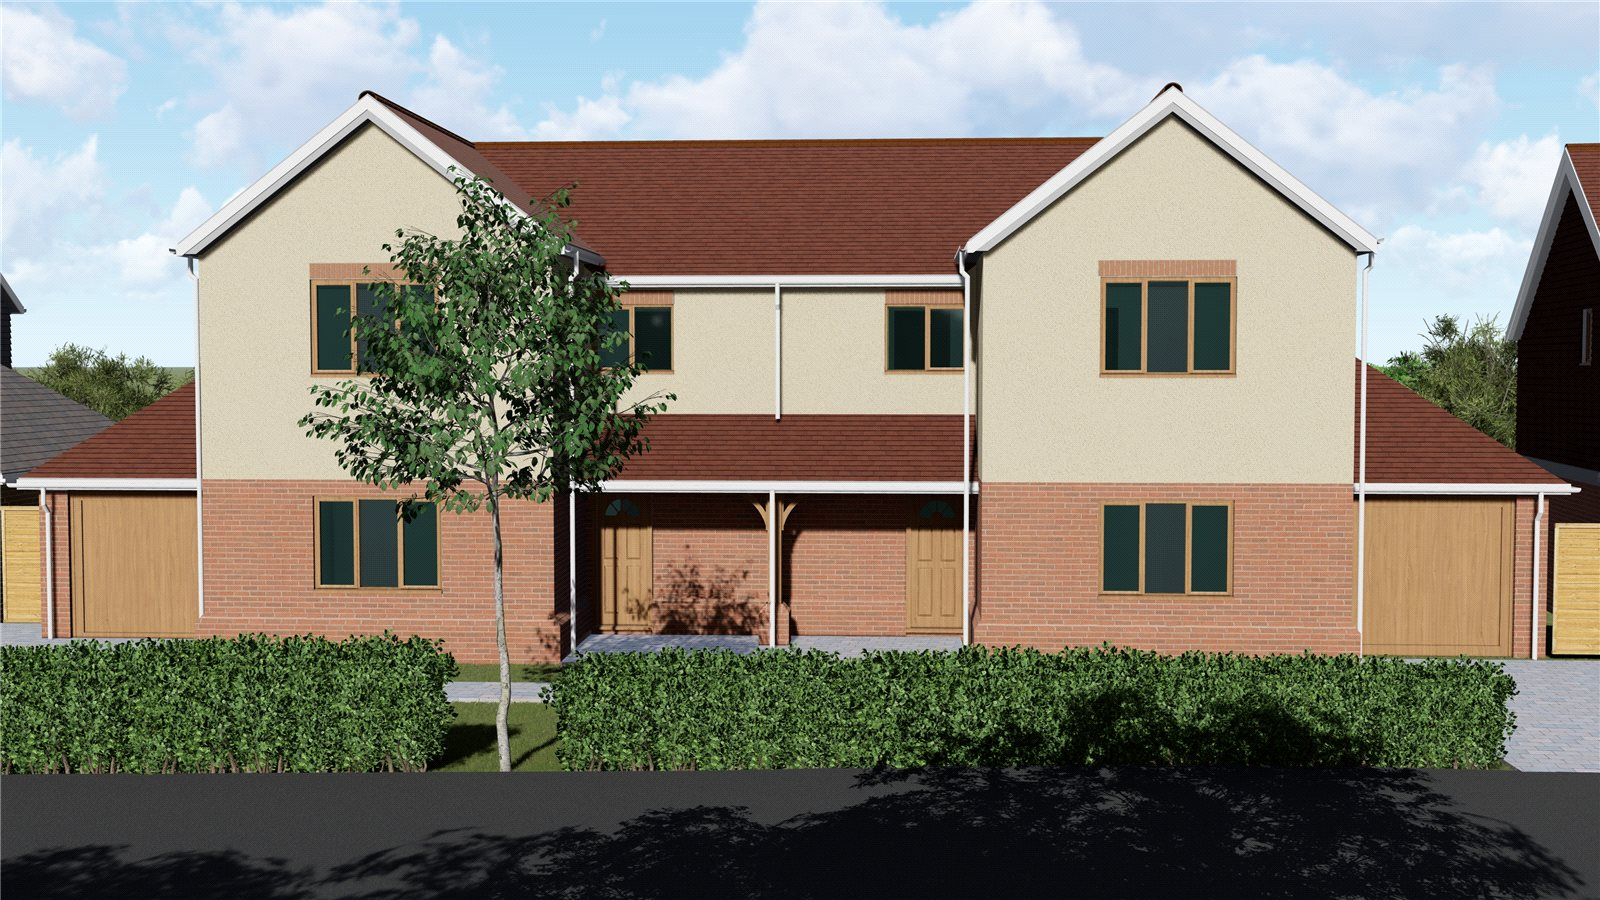 3 bed house for sale in Starlings View, Arundel Road, Angmering 2